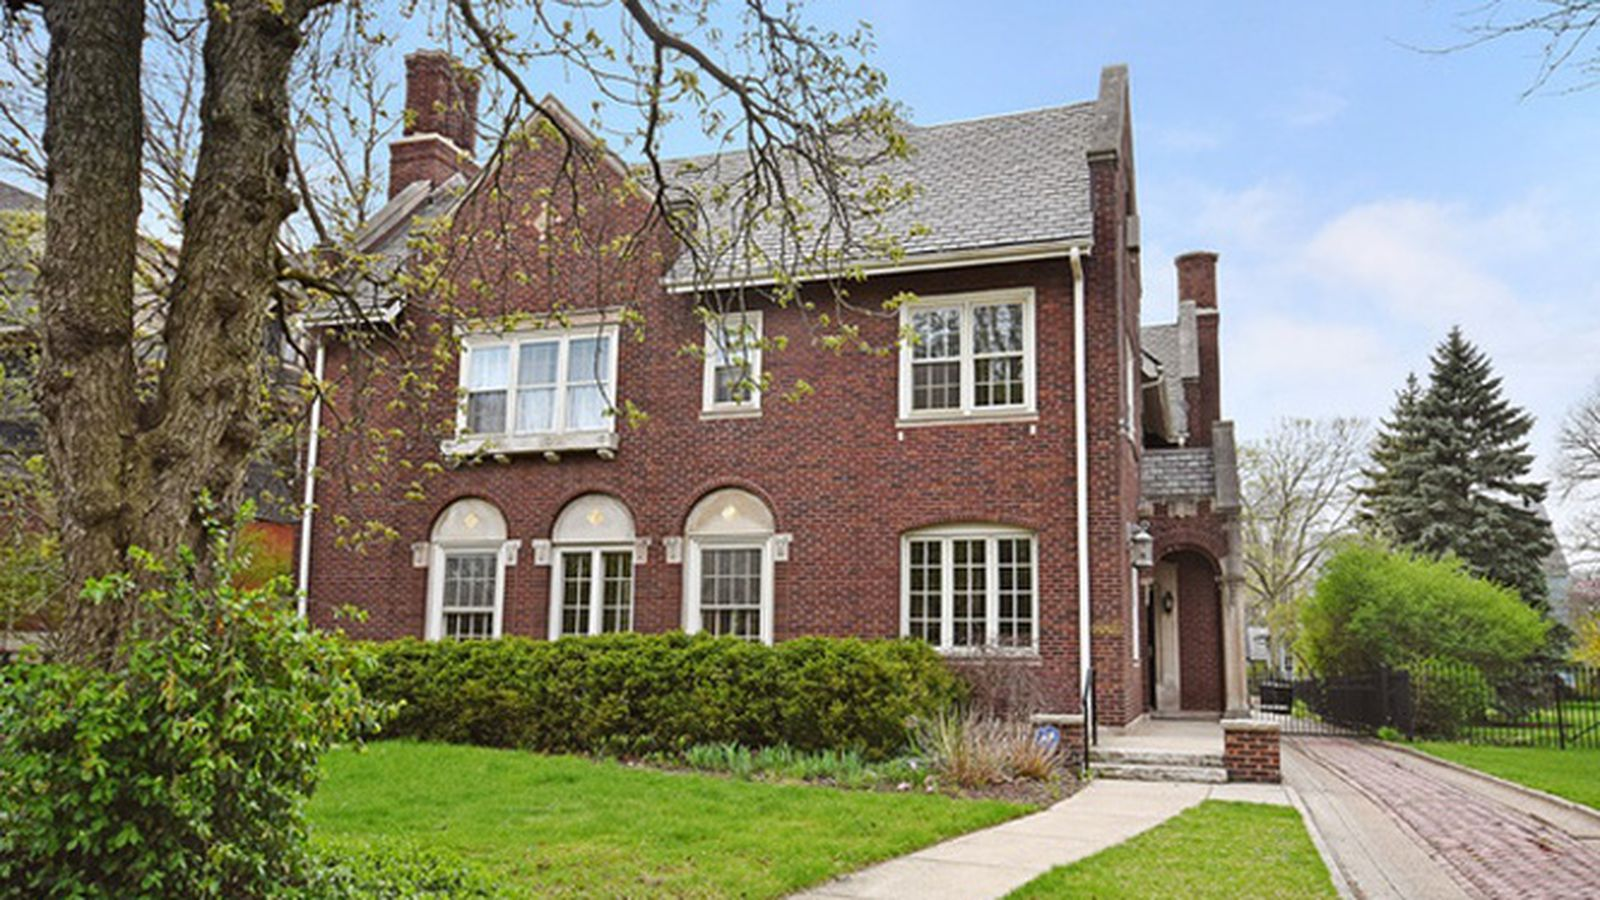 Alfred alschuler designed mansion in kenwood shaves 400k for Chicago mansion for sale